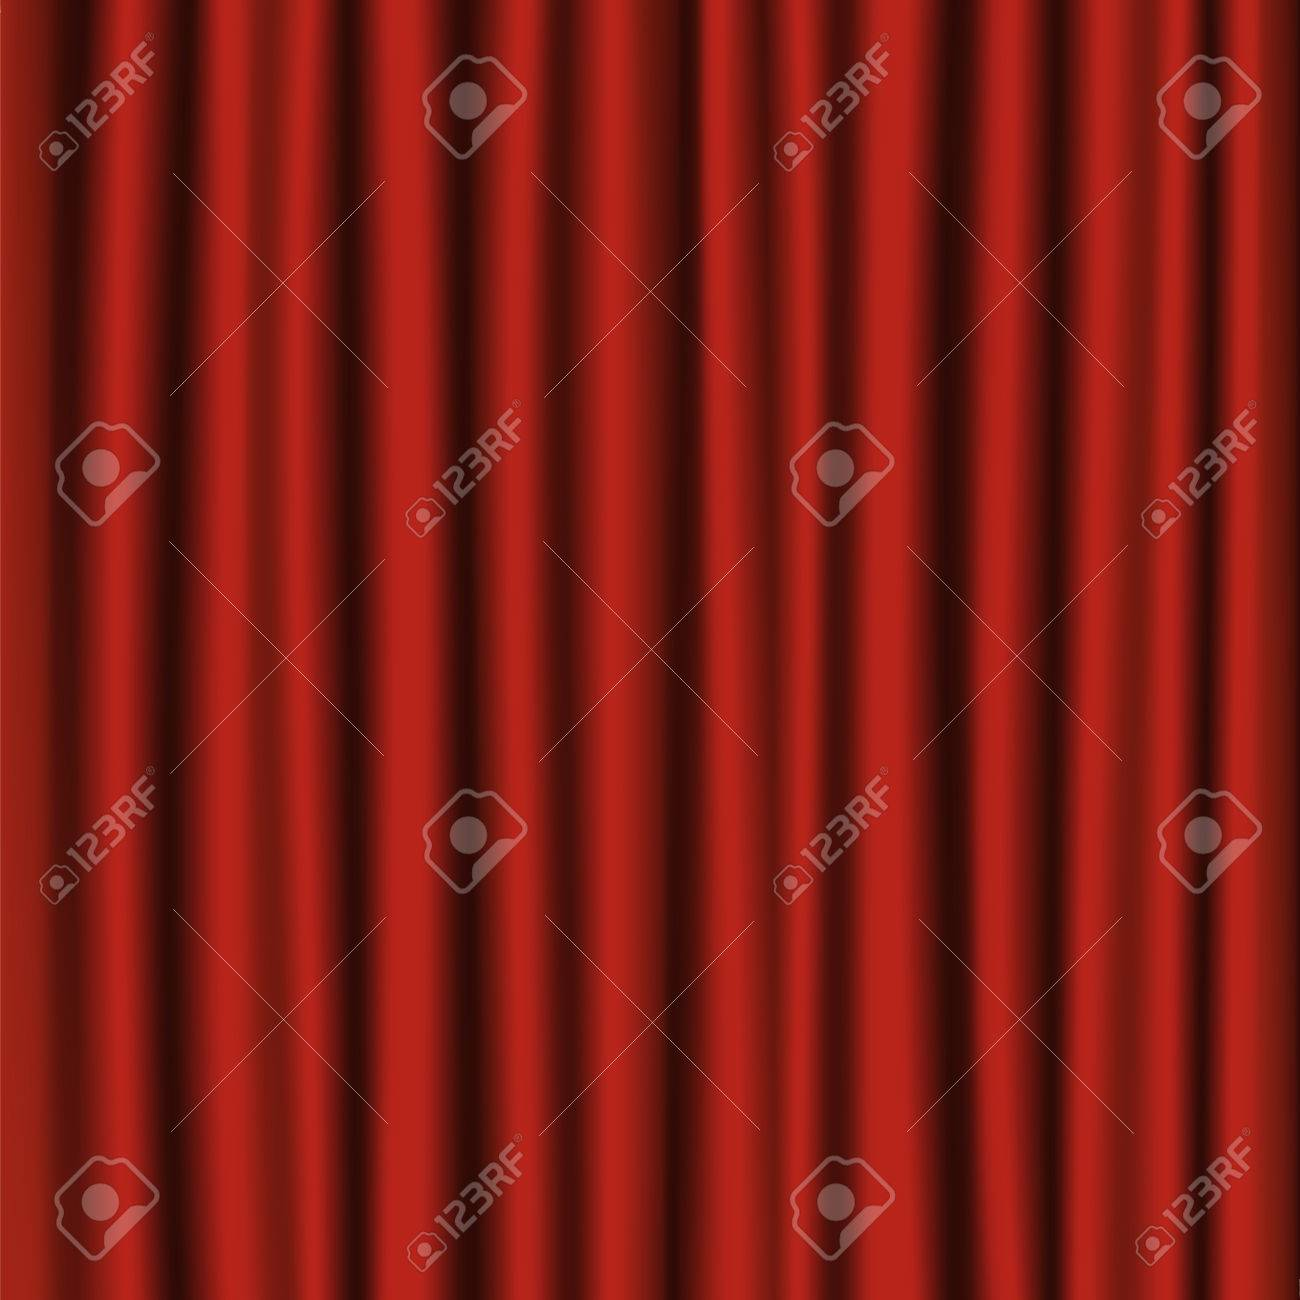 Velvet Red Curtain Background Or Backdrop Royalty Free Cliparts